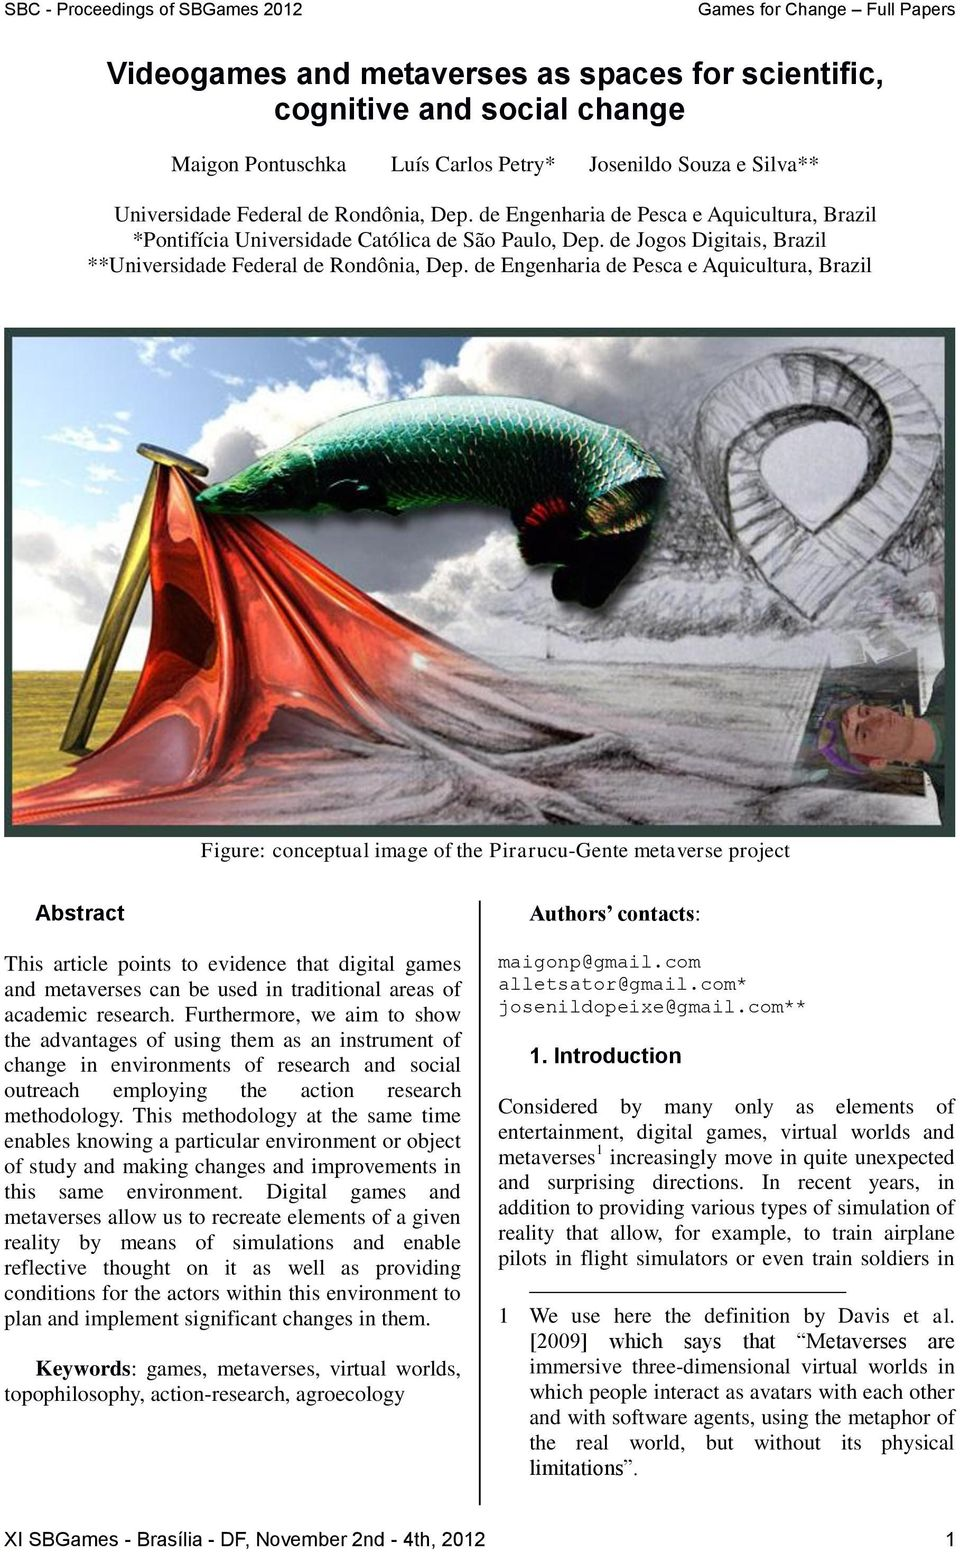 de Engenharia de Pesca e Aquicultura, Brazil Figure: conceptual image of the Pirarucu-Gente metaverse project Abstract This article points to evidence that digital games and metaverses can be used in